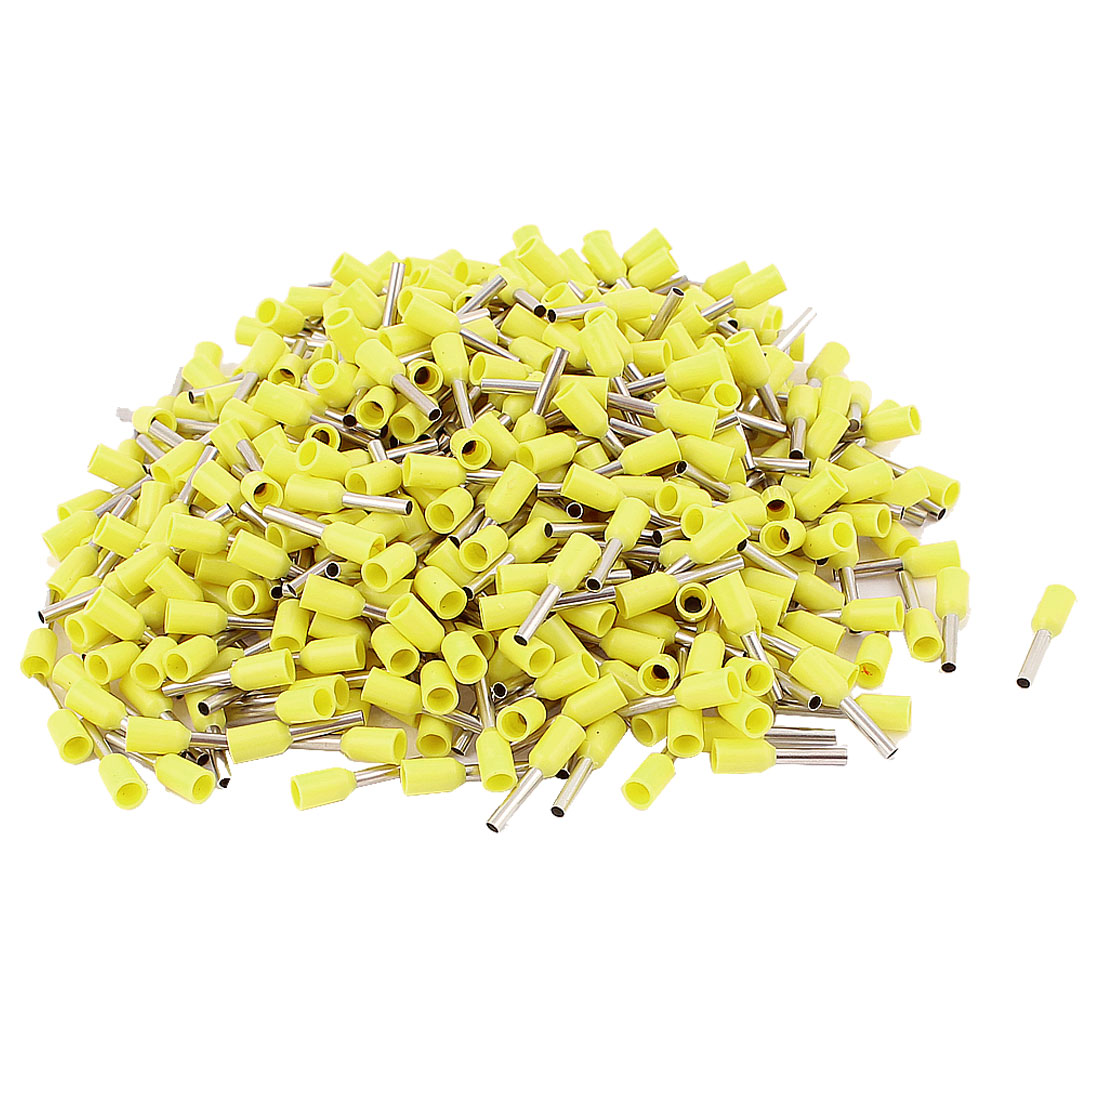 460pcs Wire Crimp Connector Pin End Insulated Terminal Yellow for AWG20 Cable